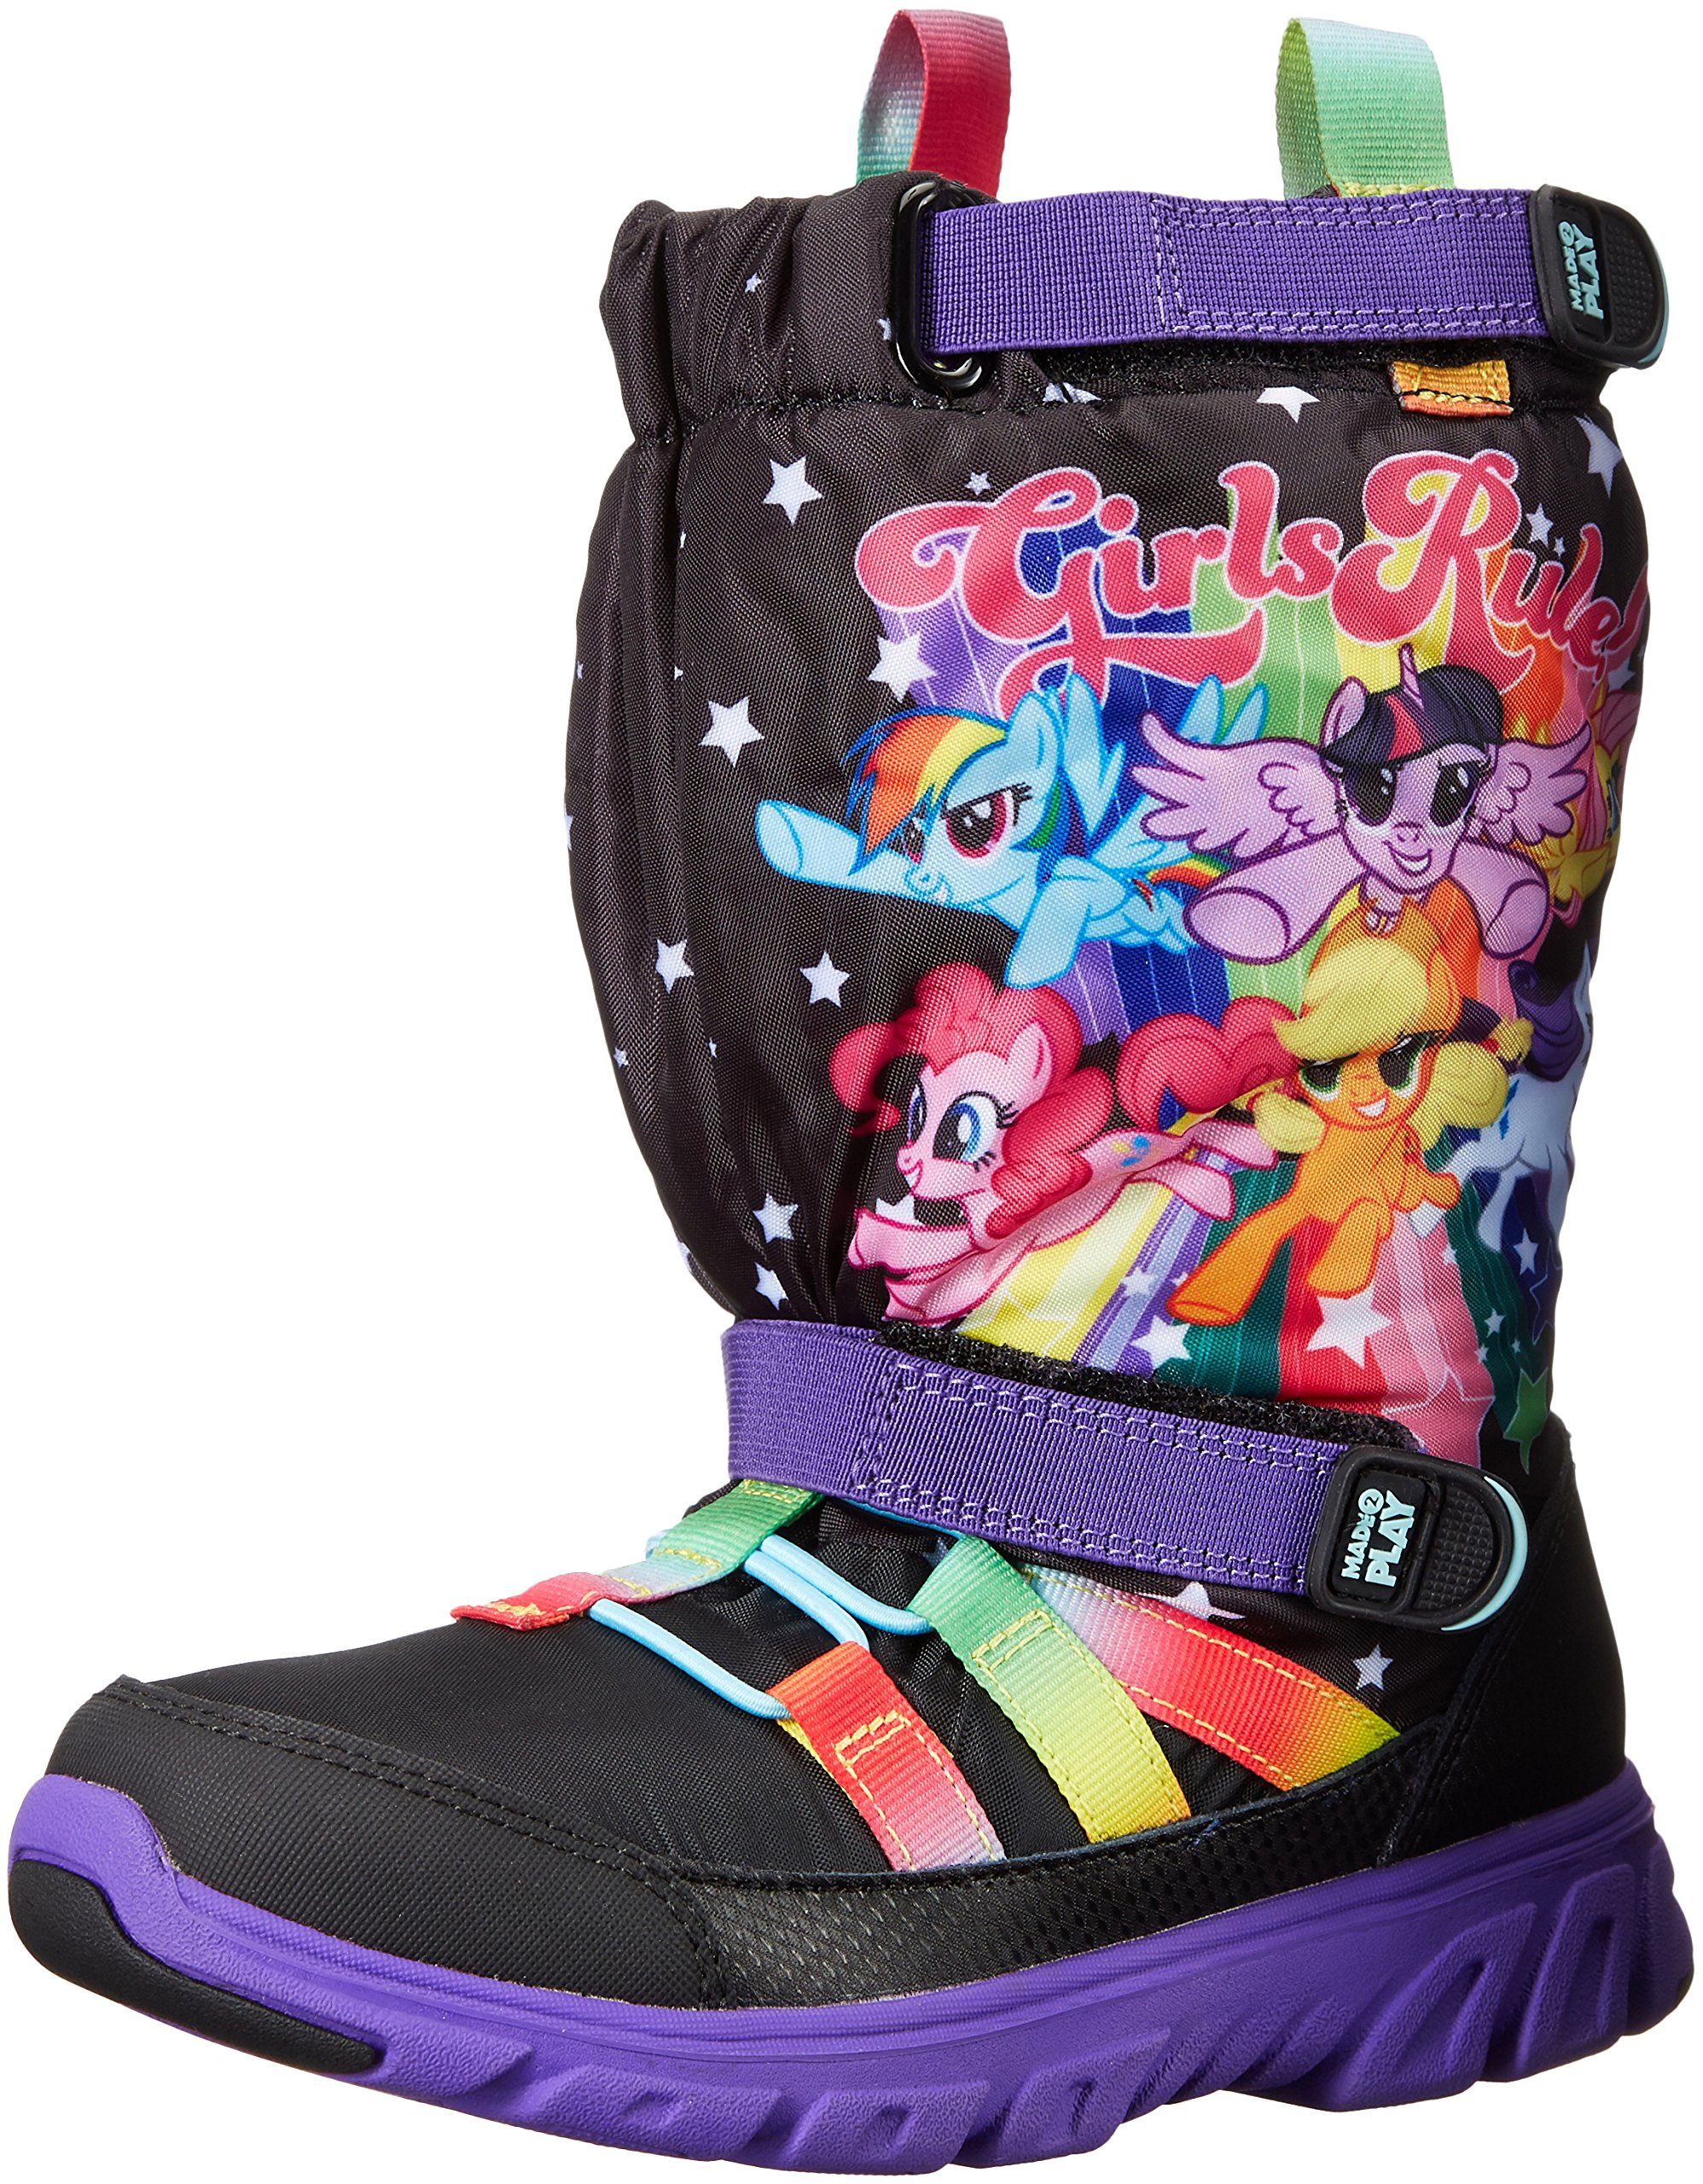 Stride Rite Made 2 Play Sneaker Winter Boot (Toddler/Little Kid), Black/Rainbow, 5.5 M US Toddler